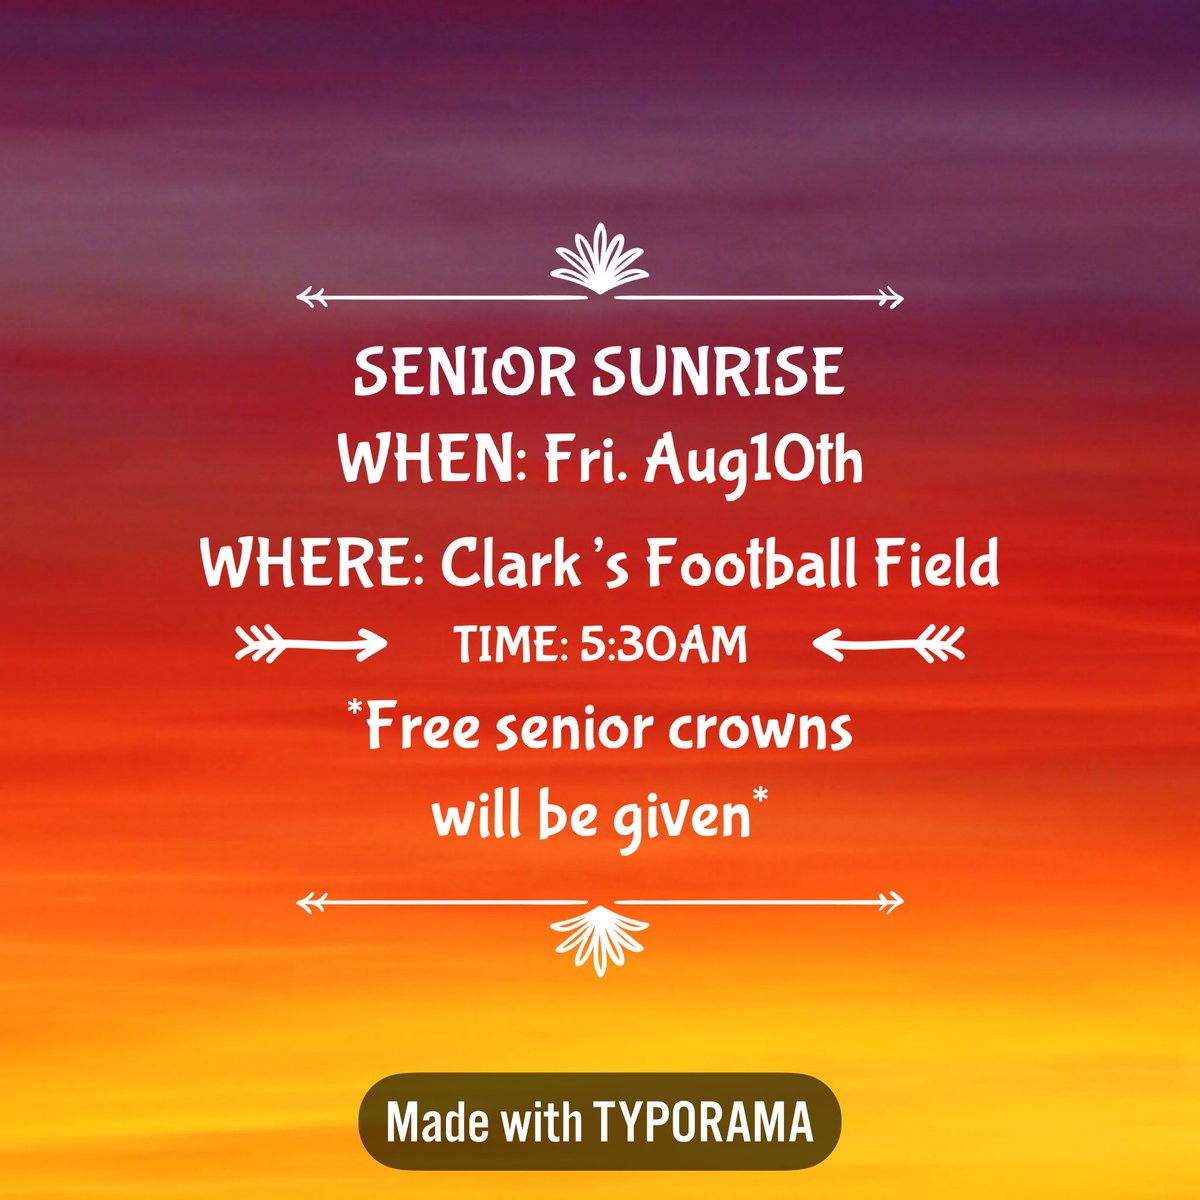 sunny side senior personals Sunnyside is located about eight miles south of downtown houston it is bordered along the north side by i-610 and along the west side by highway 288 along the south side, the sims bayou forms a natural border.